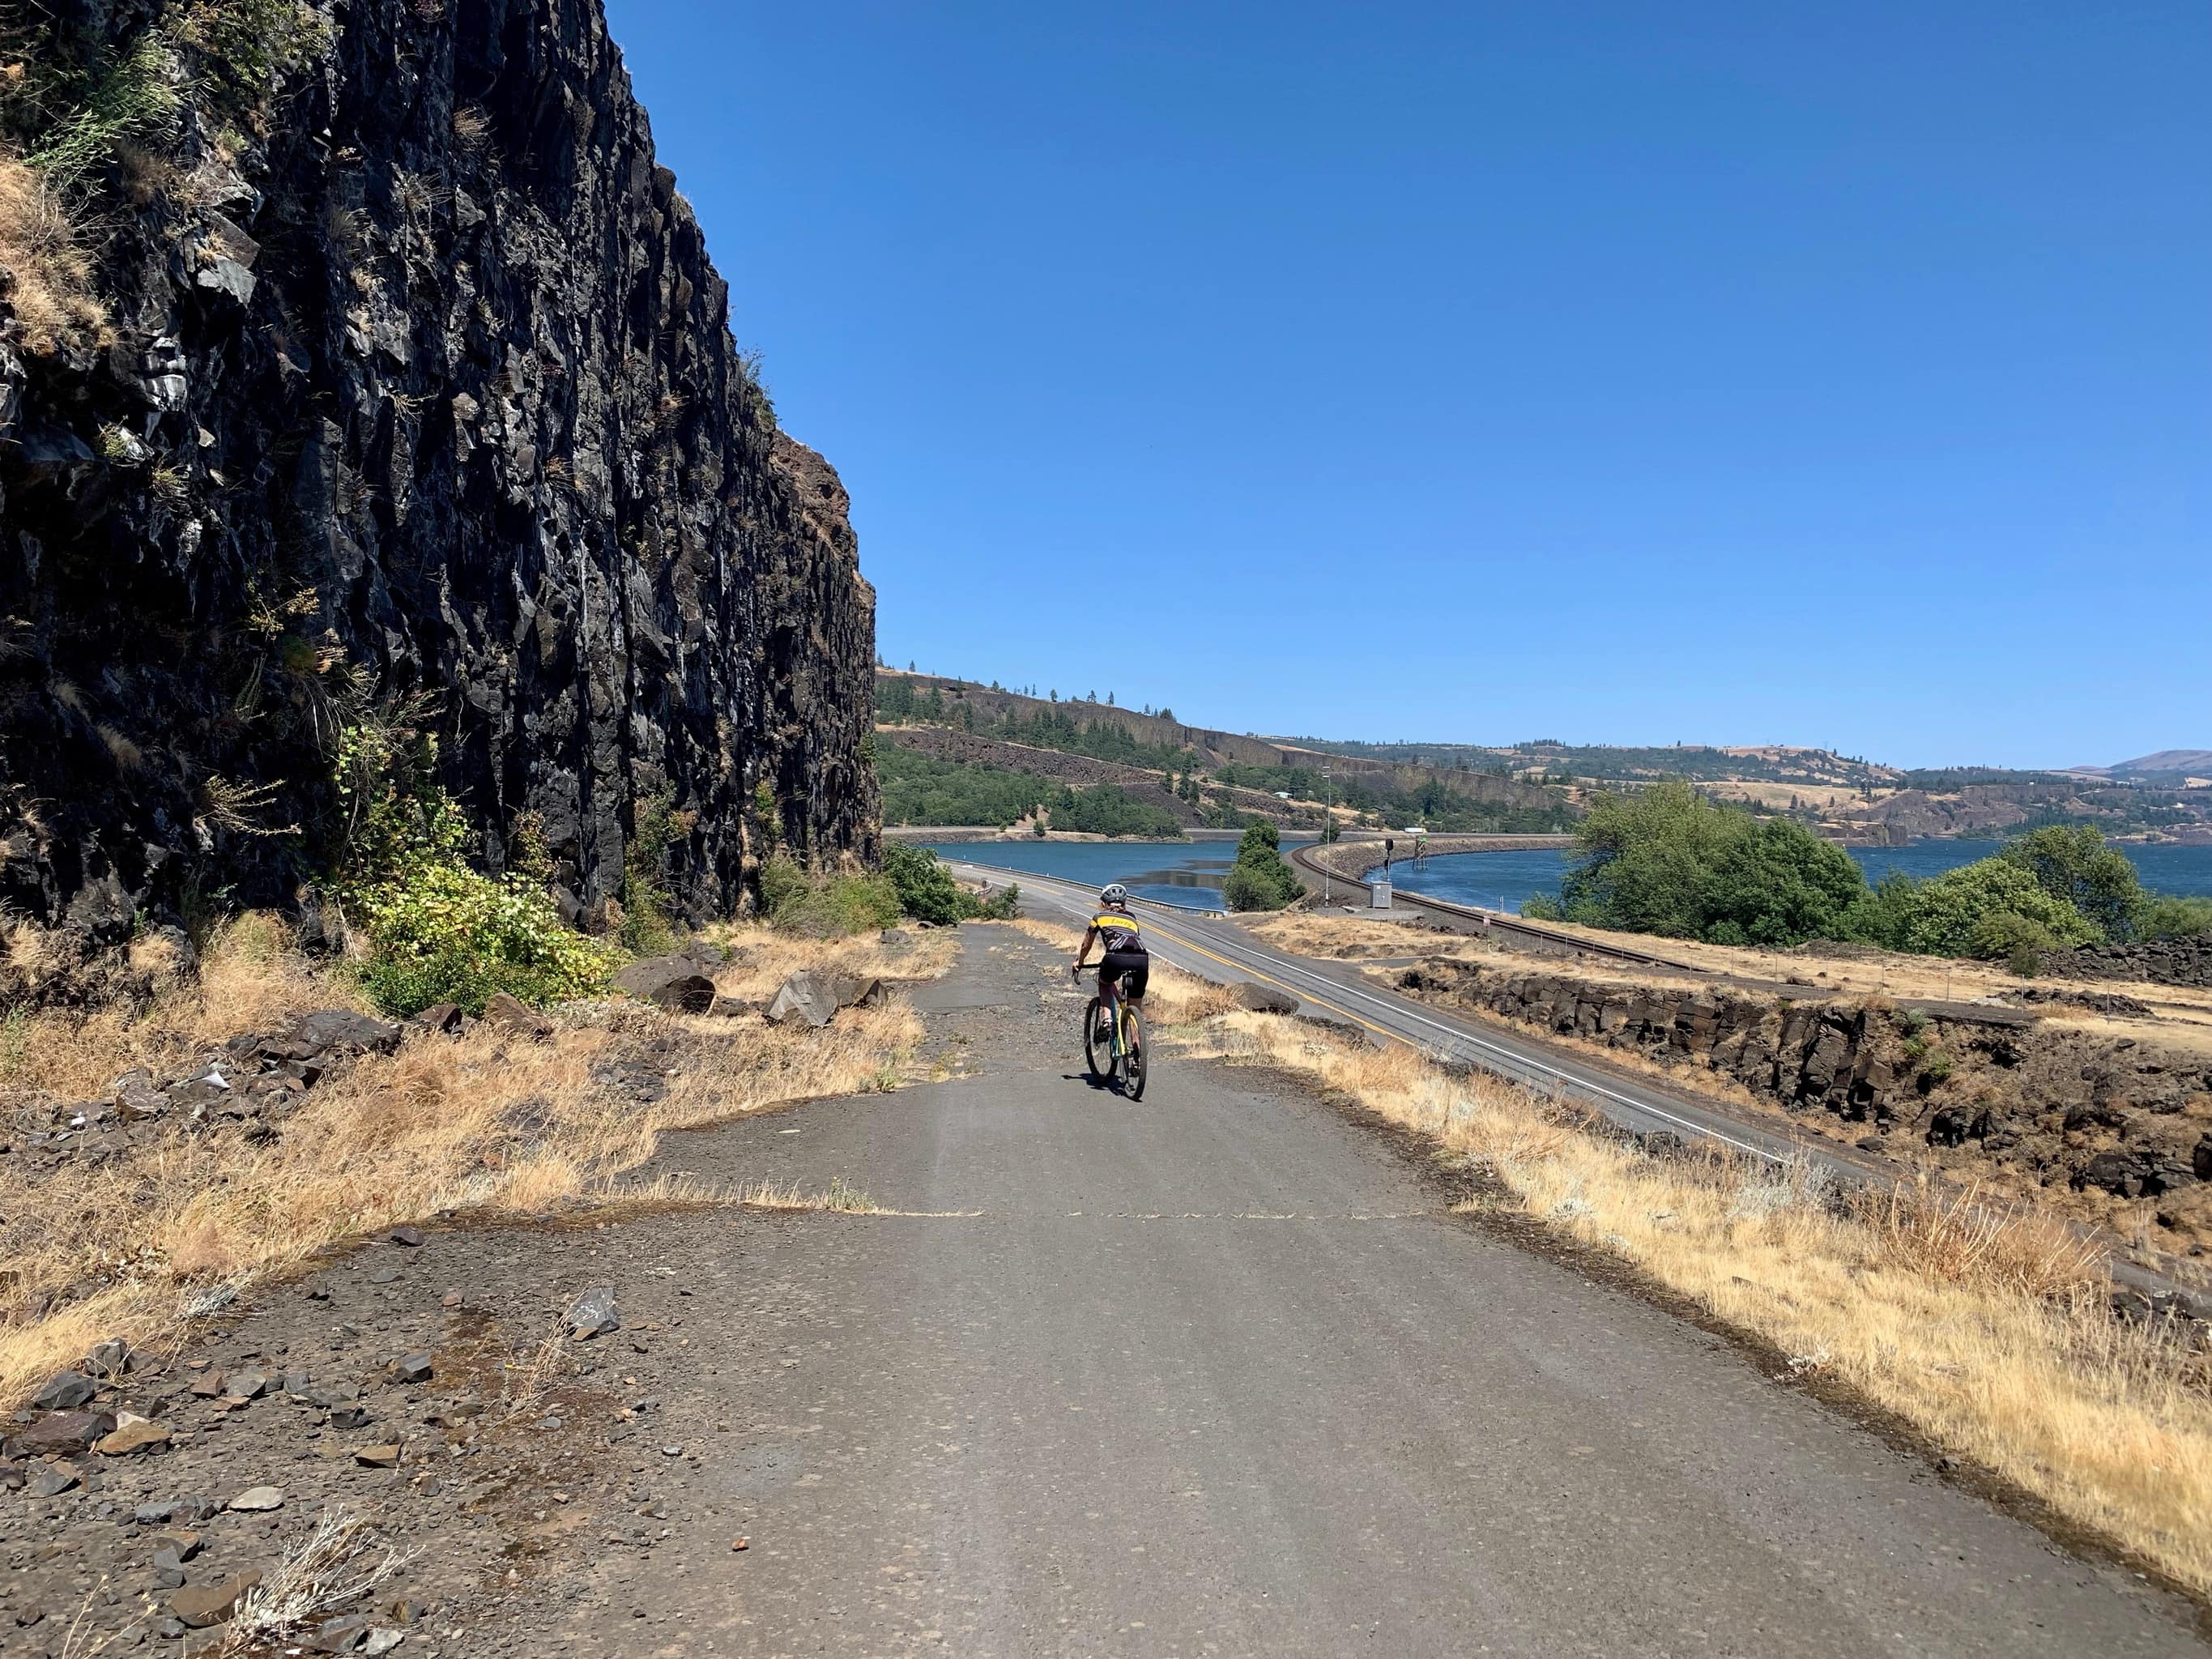 Broken sections of pavement on Old Highway 8 trail on the Washington side of the Columbia River.